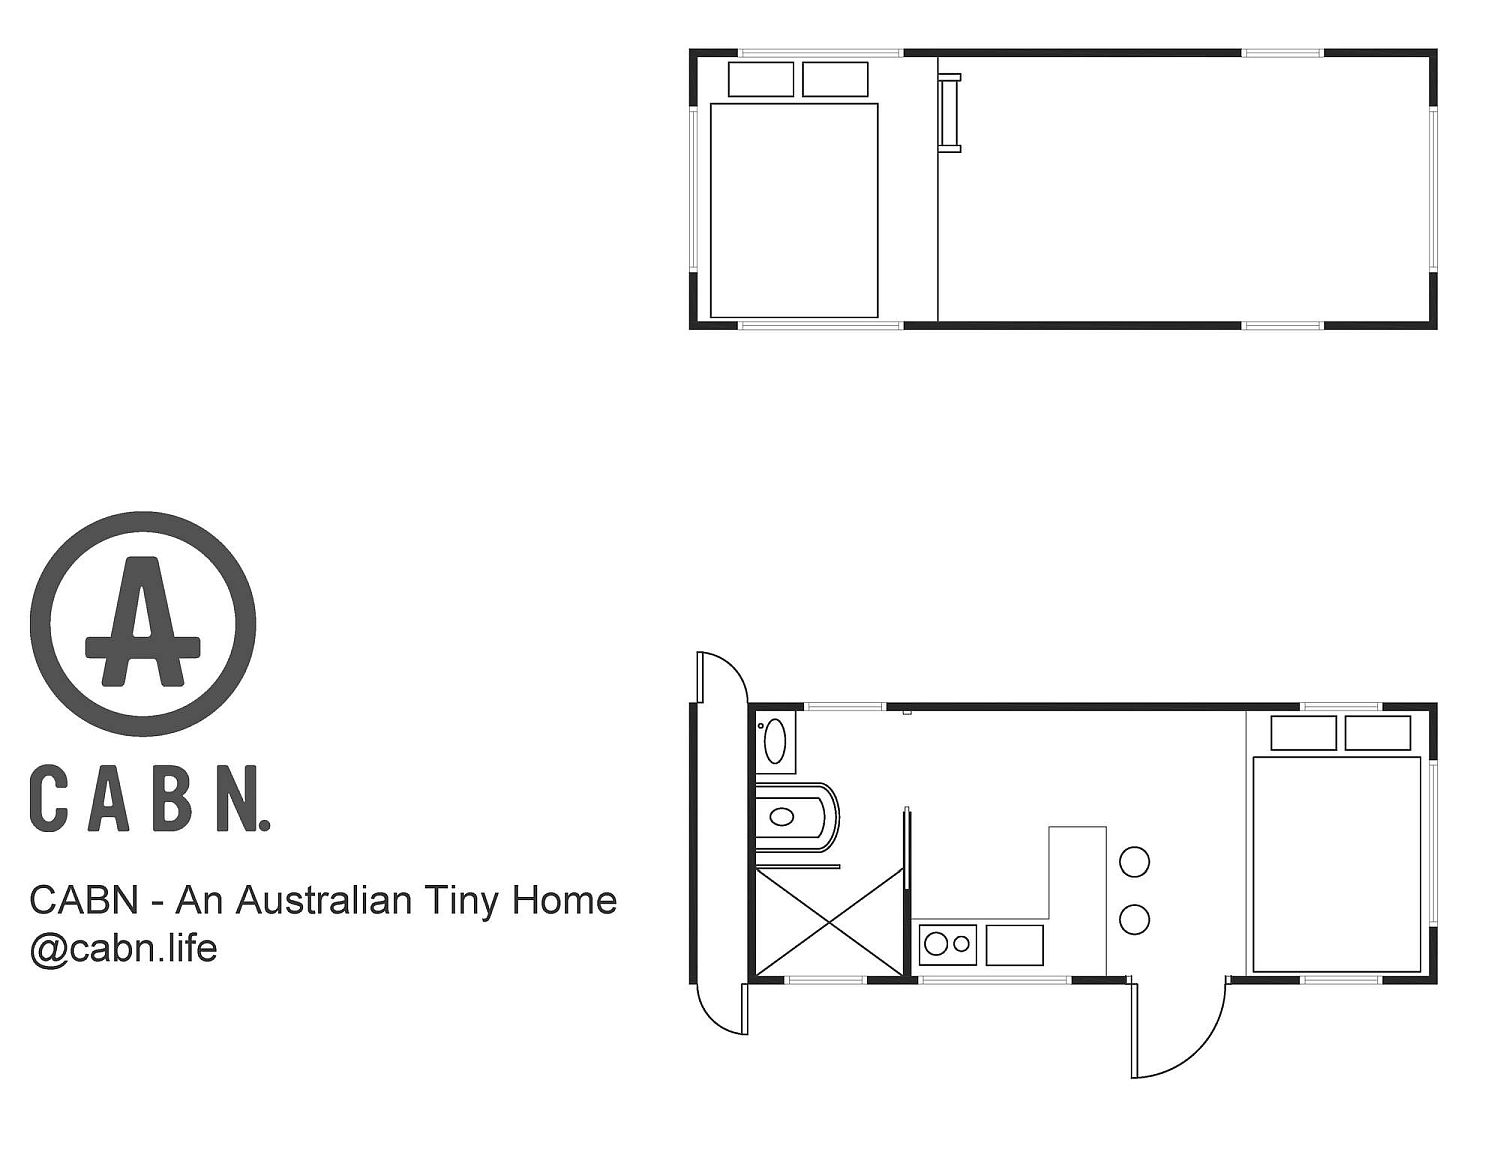 Design of the Australian tiny house